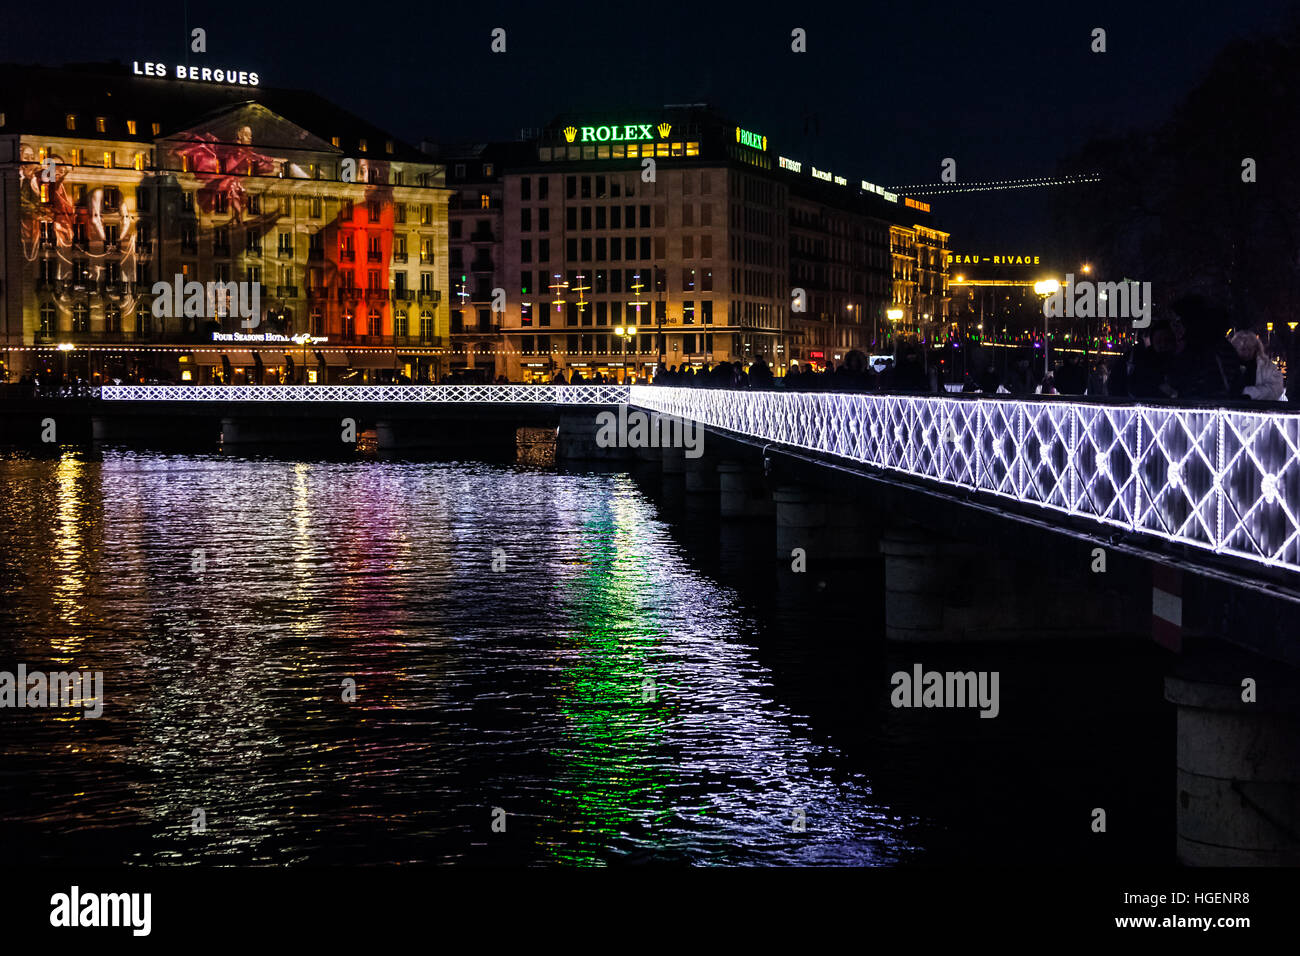 Christmas illuminations in Geneva with reflections on the lake - Stock Image